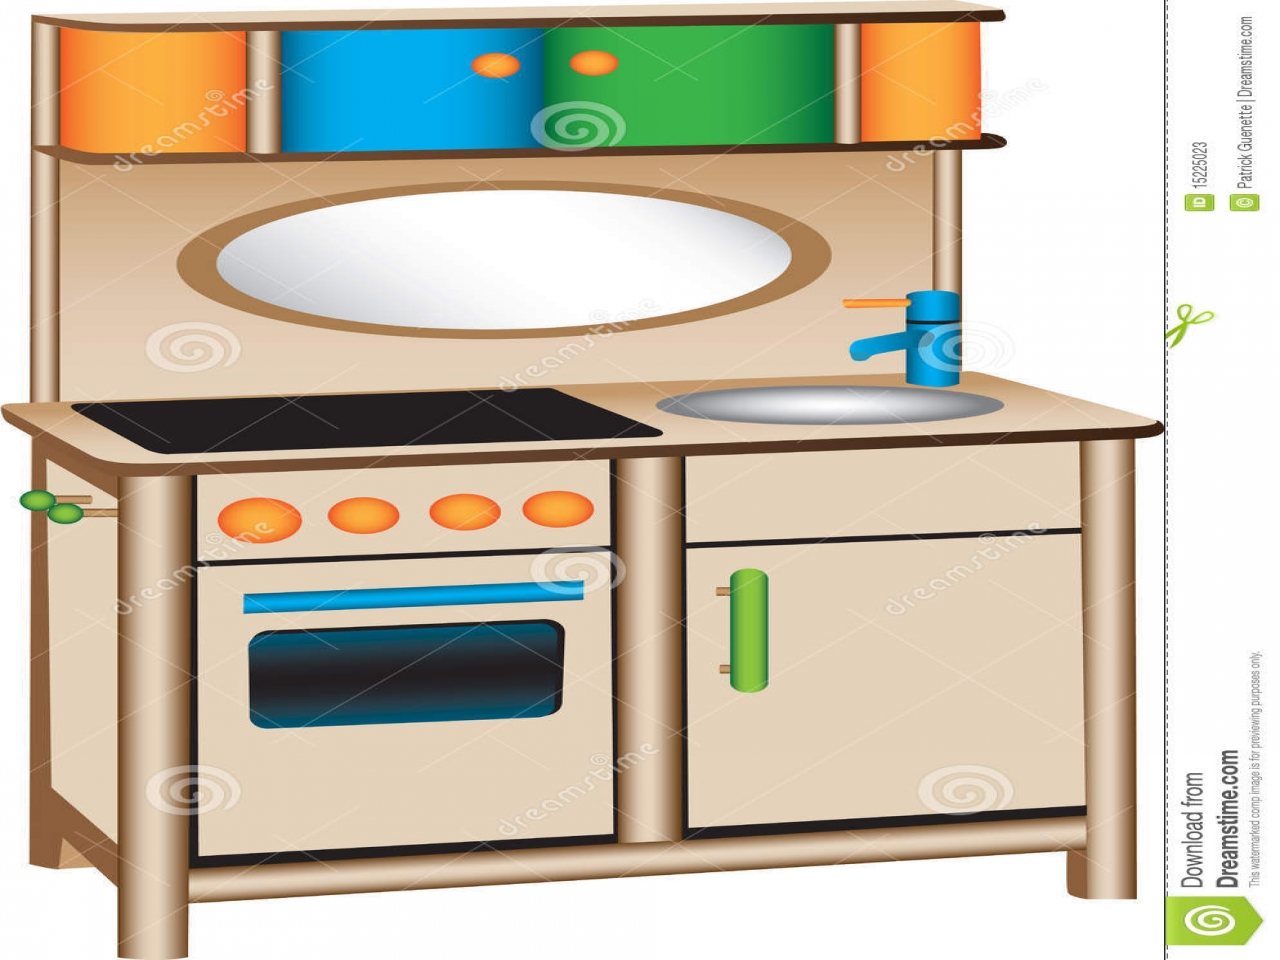 1280x960 Kitchen Clipart Classroom Centers